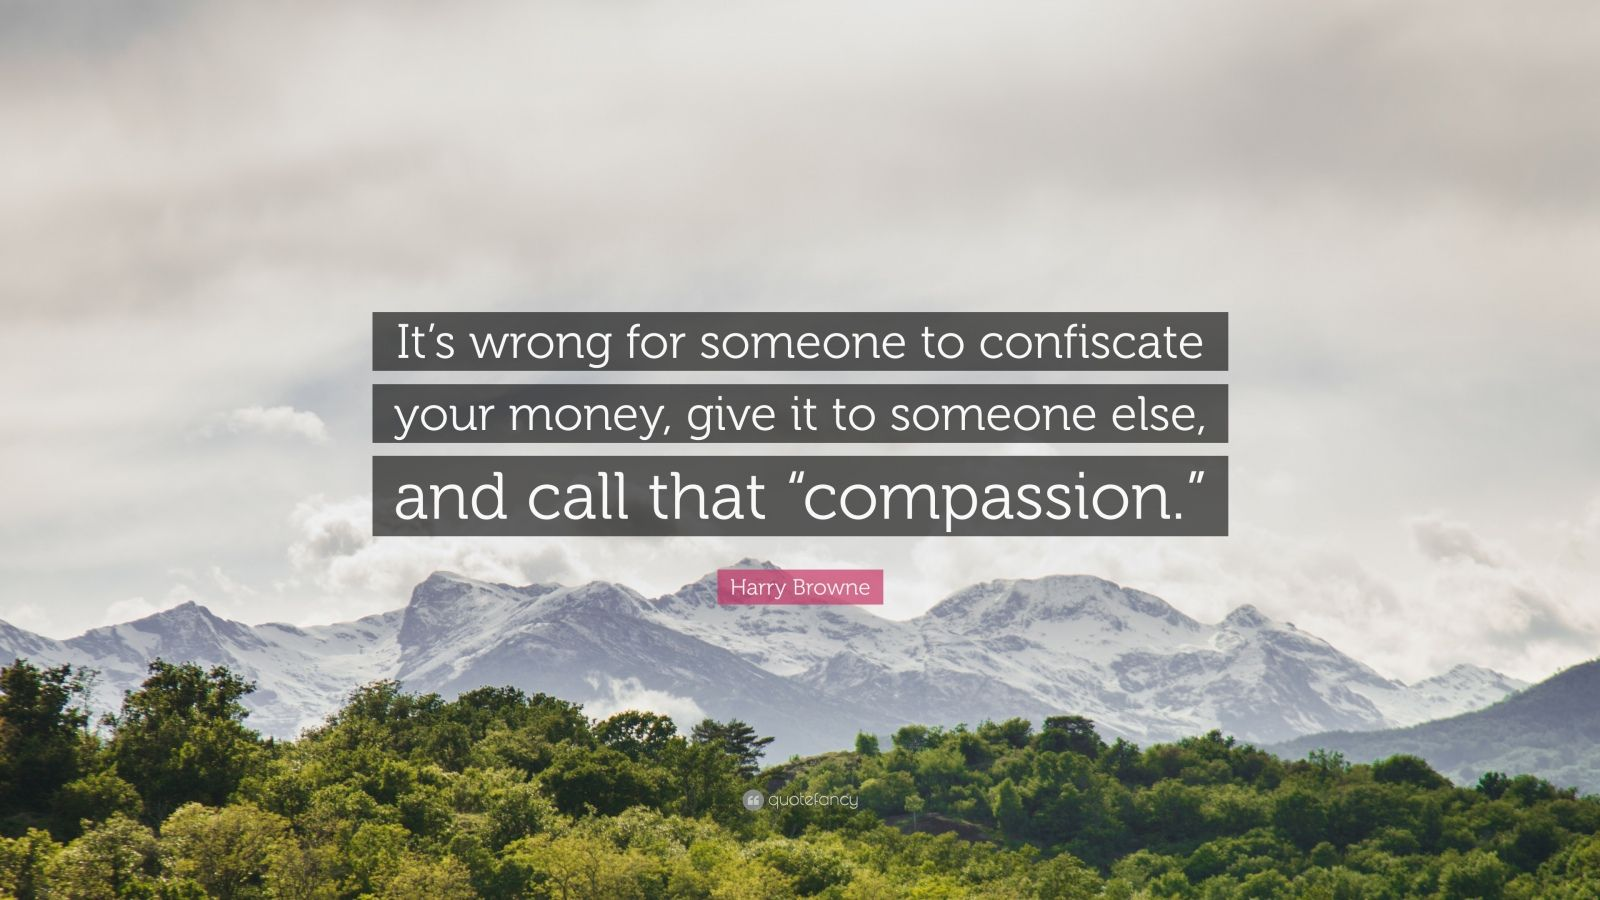 """Harry Browne Quote: """"It's wrong for someone to confiscate your money, give it to someone else, and call that """"compassion."""""""""""